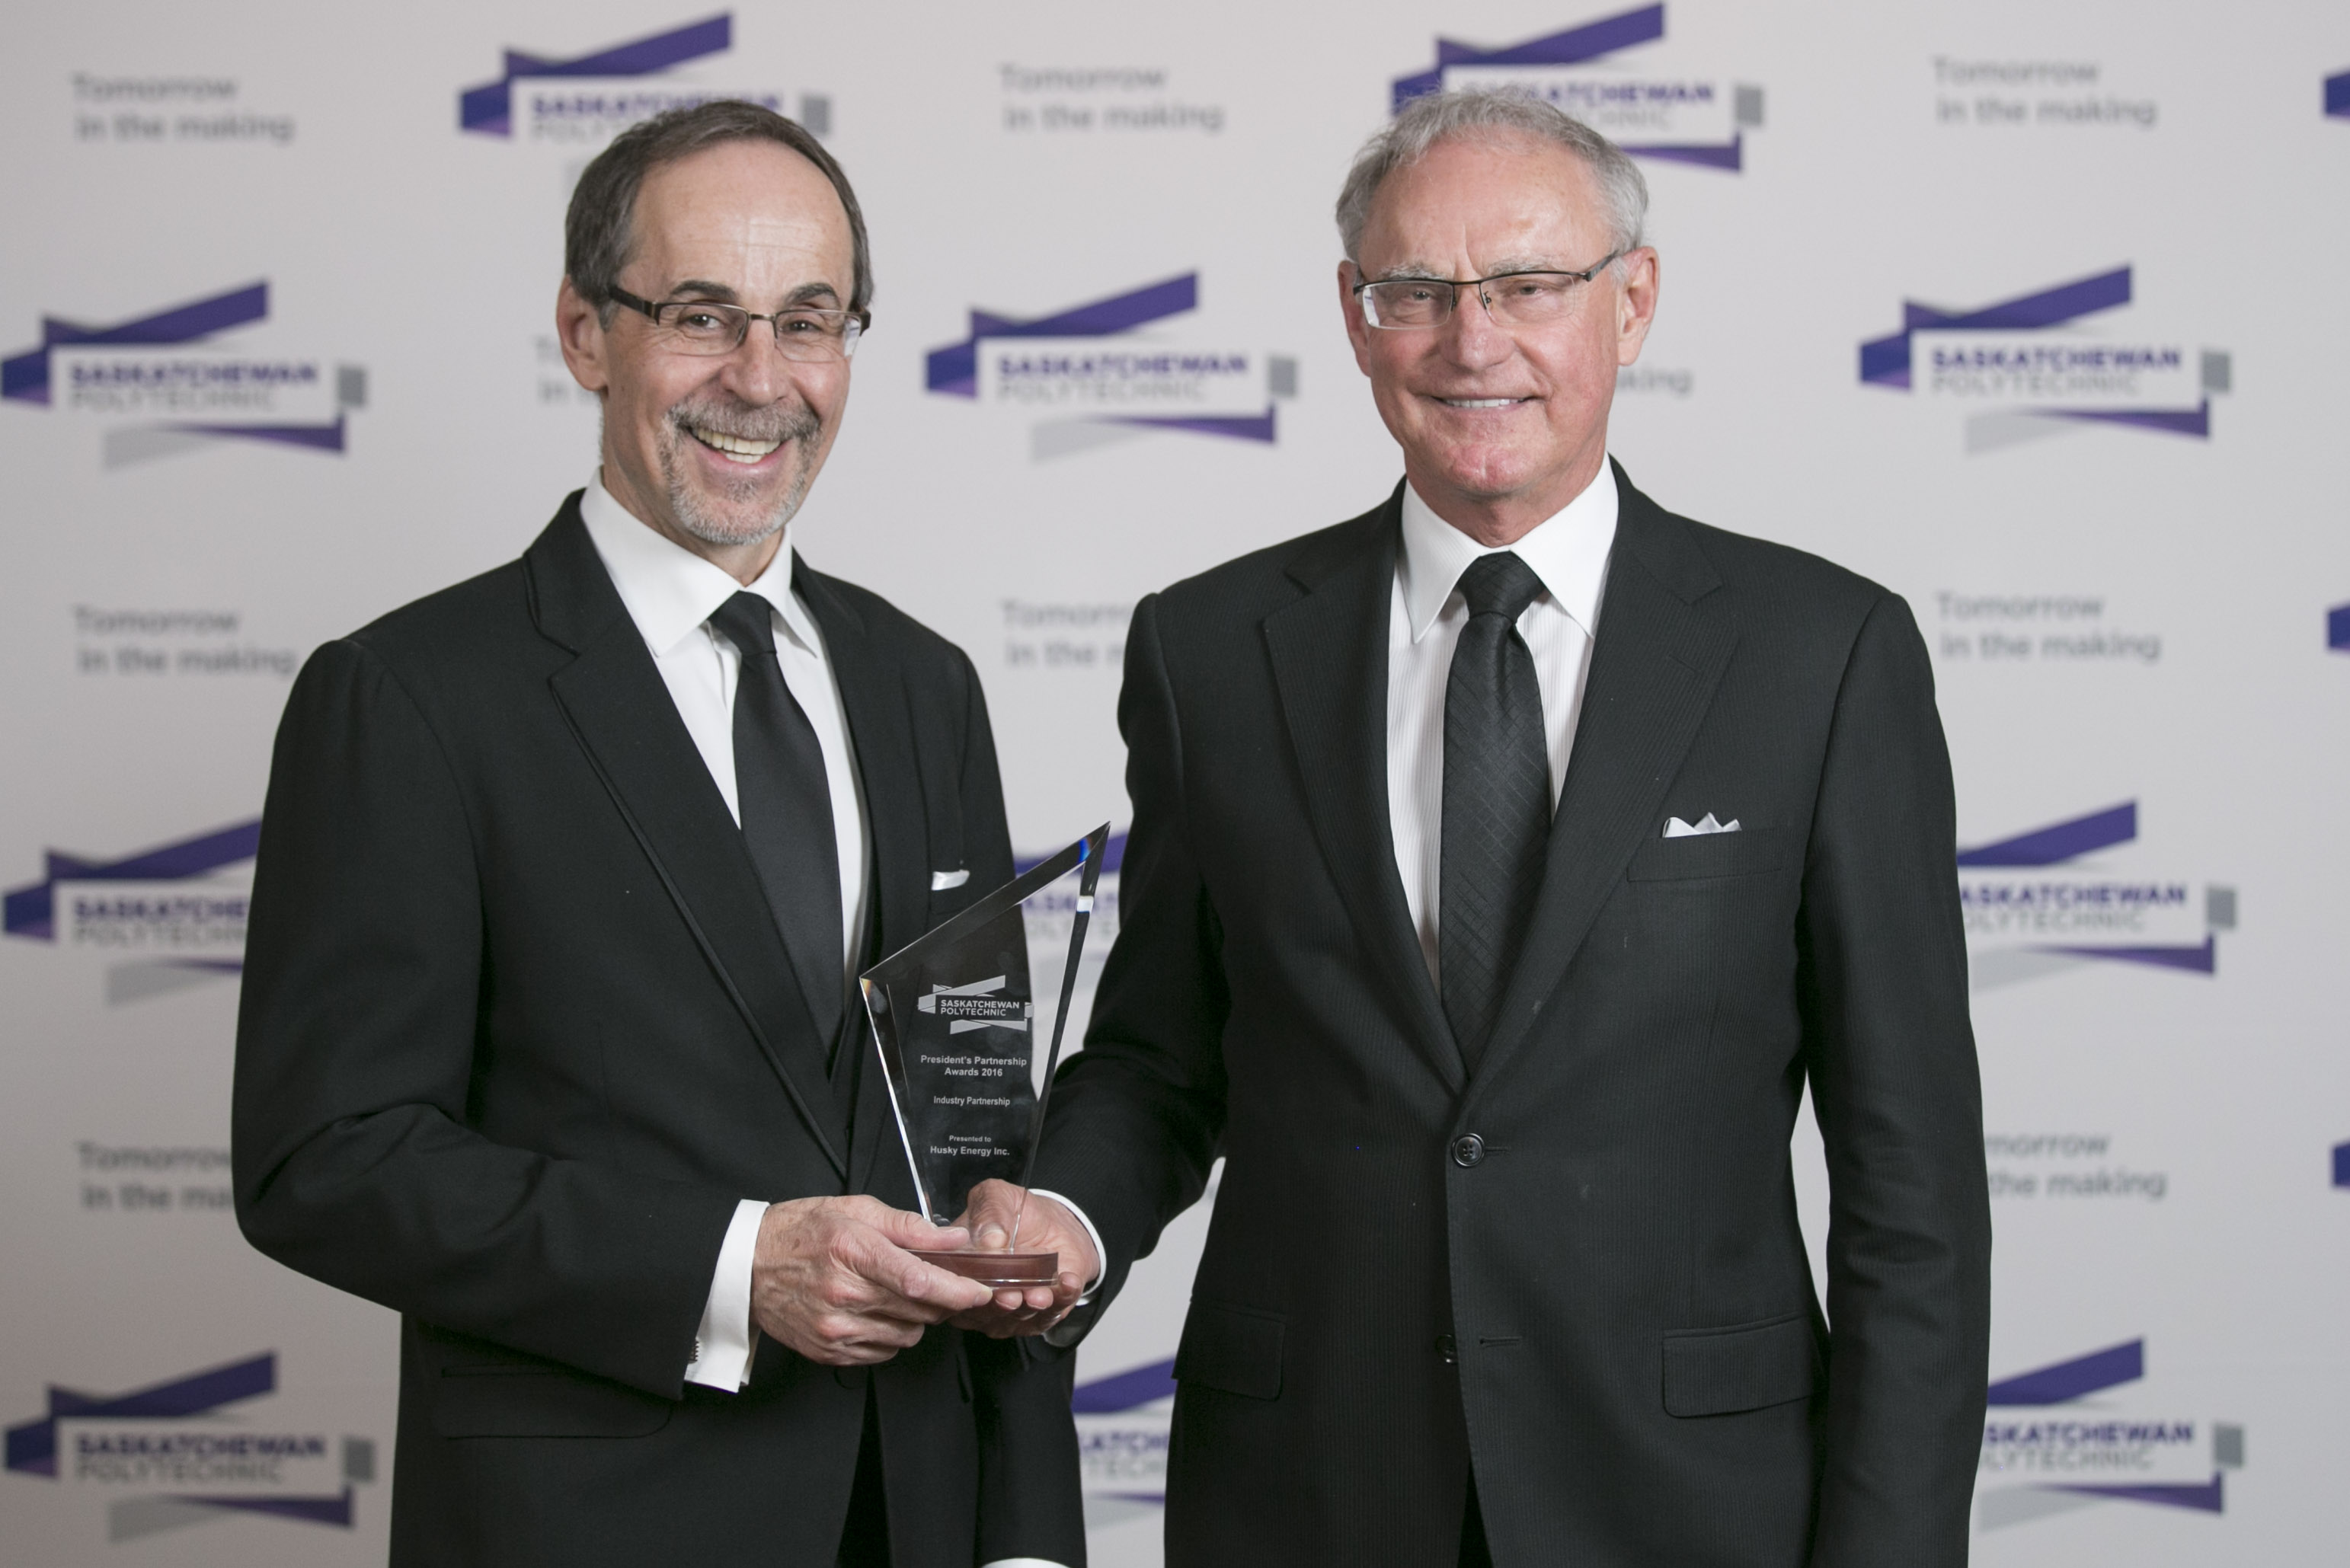 Receiving the award on behalf of Husky Energy Ed Connolly, Senior Vice President, Heavy Oil